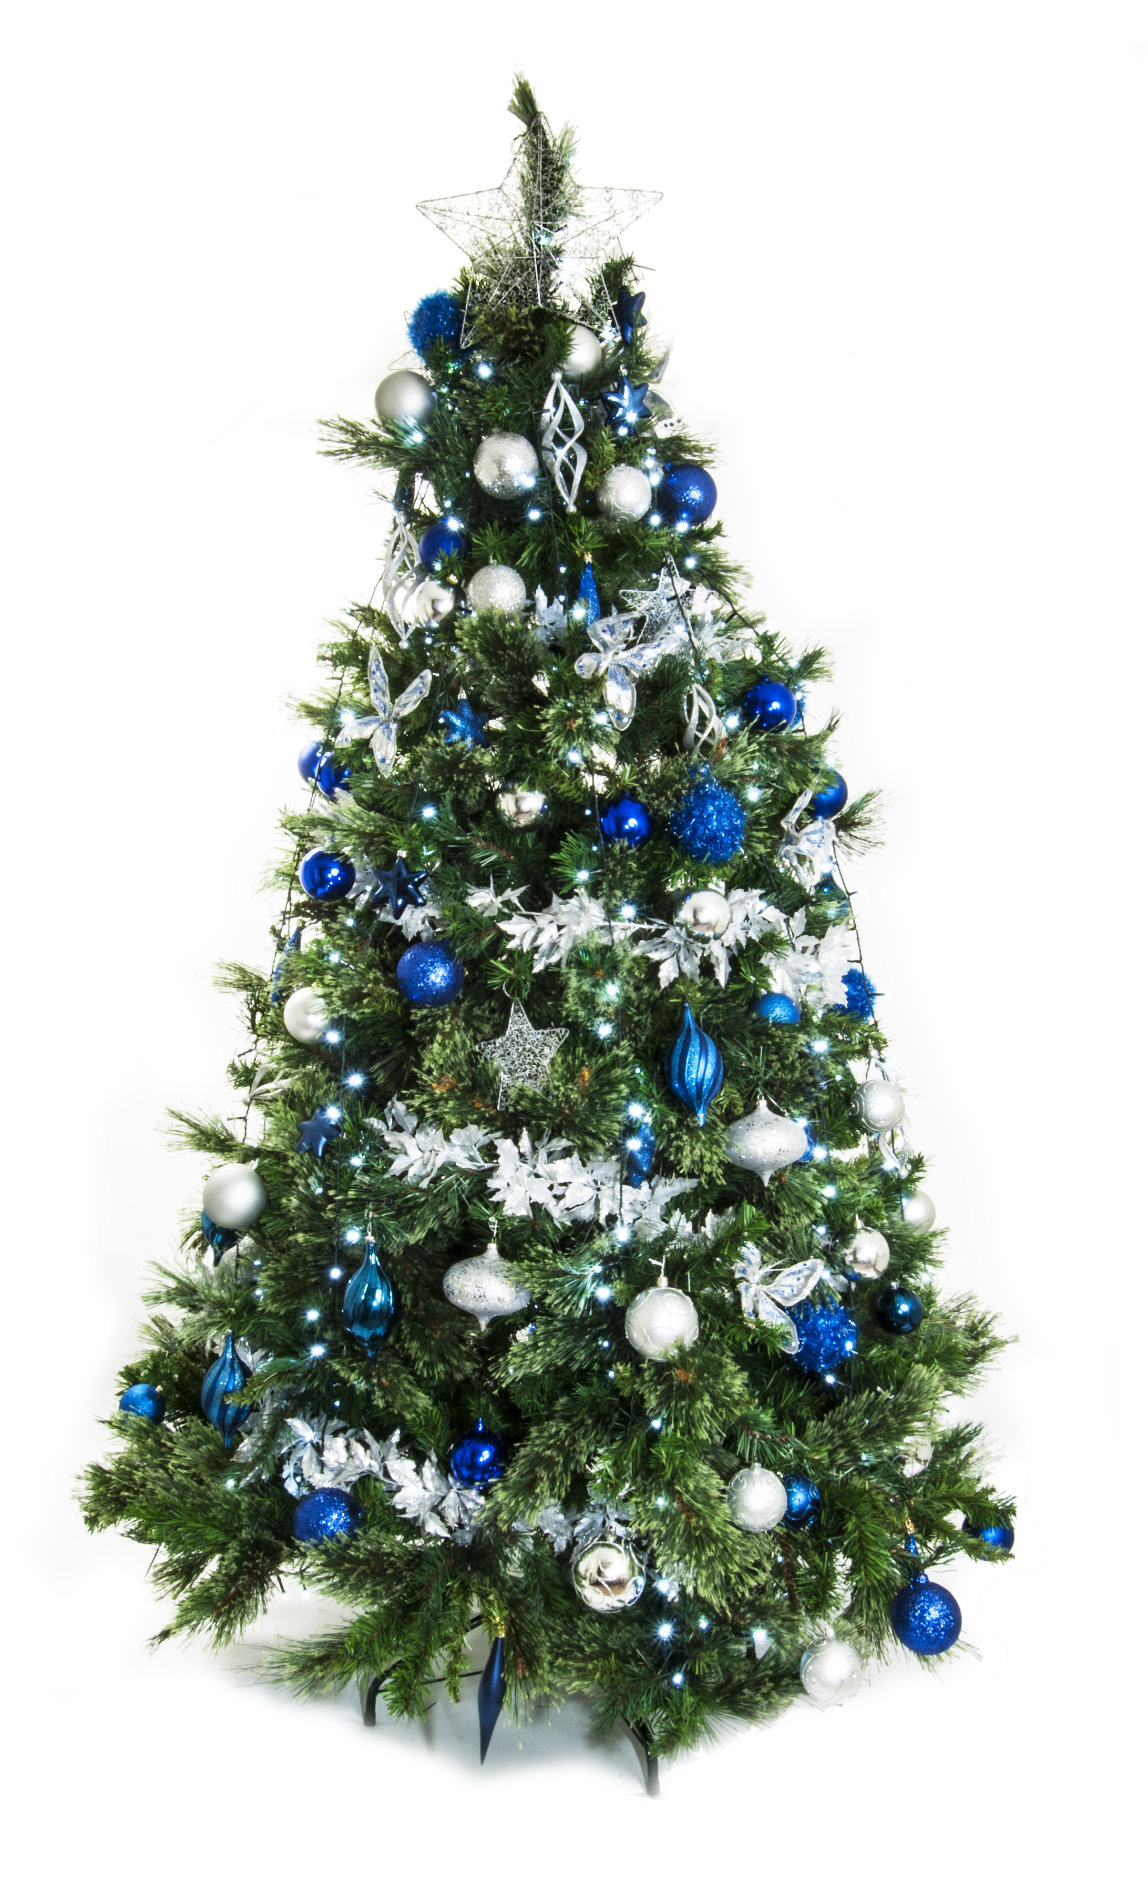 Best Artificial Christmas Trees Nz Furniture Design For Your Home